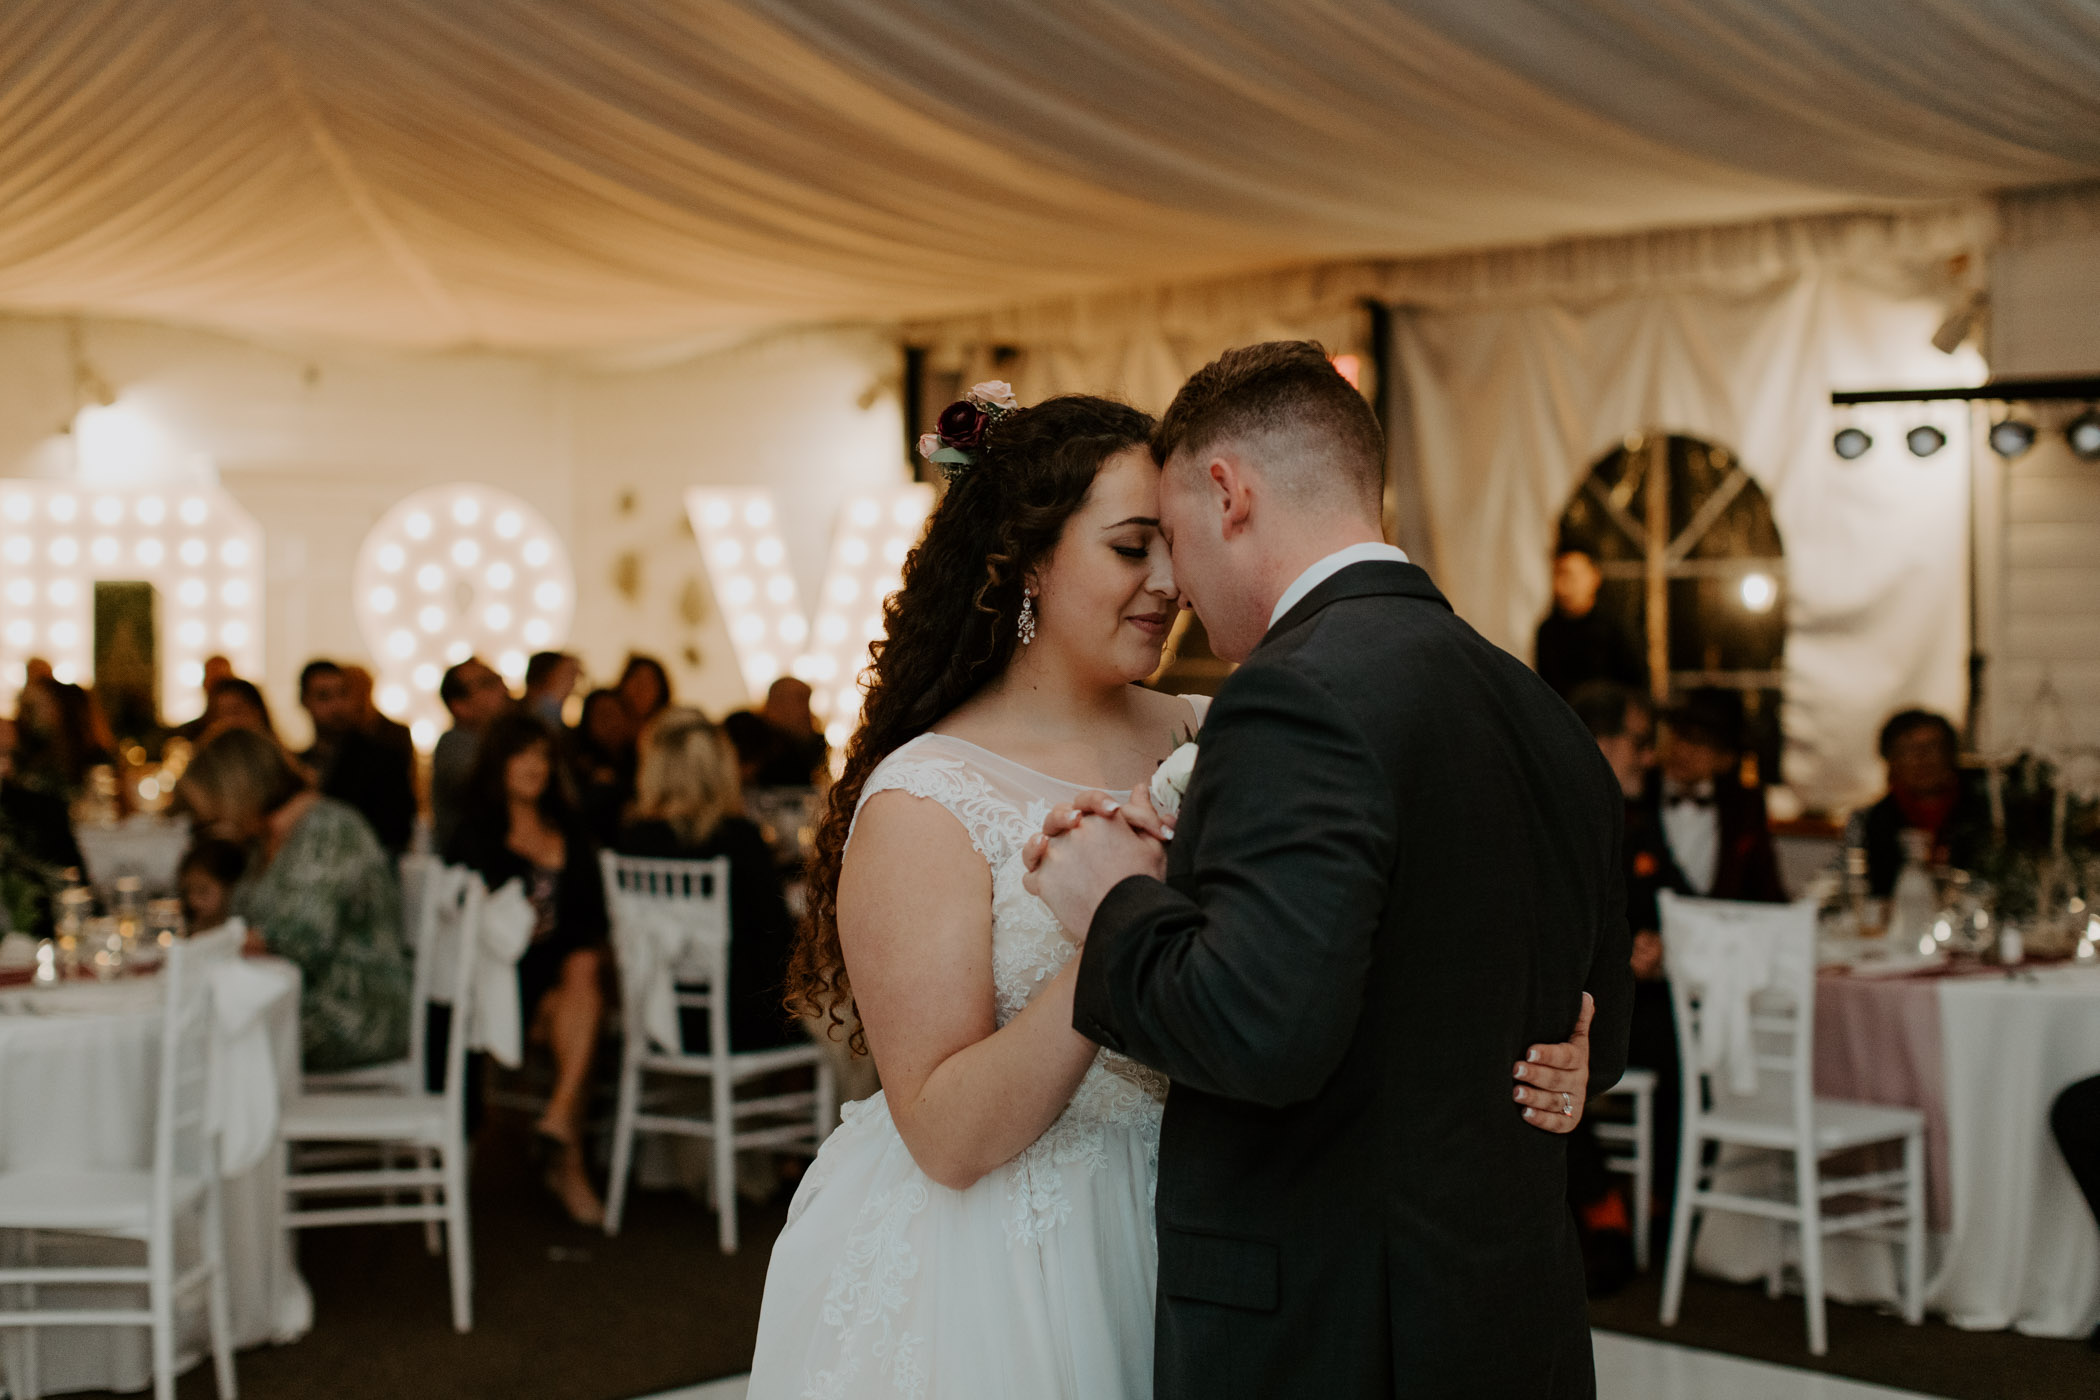 Bride and groom sharing first dance and being romantic